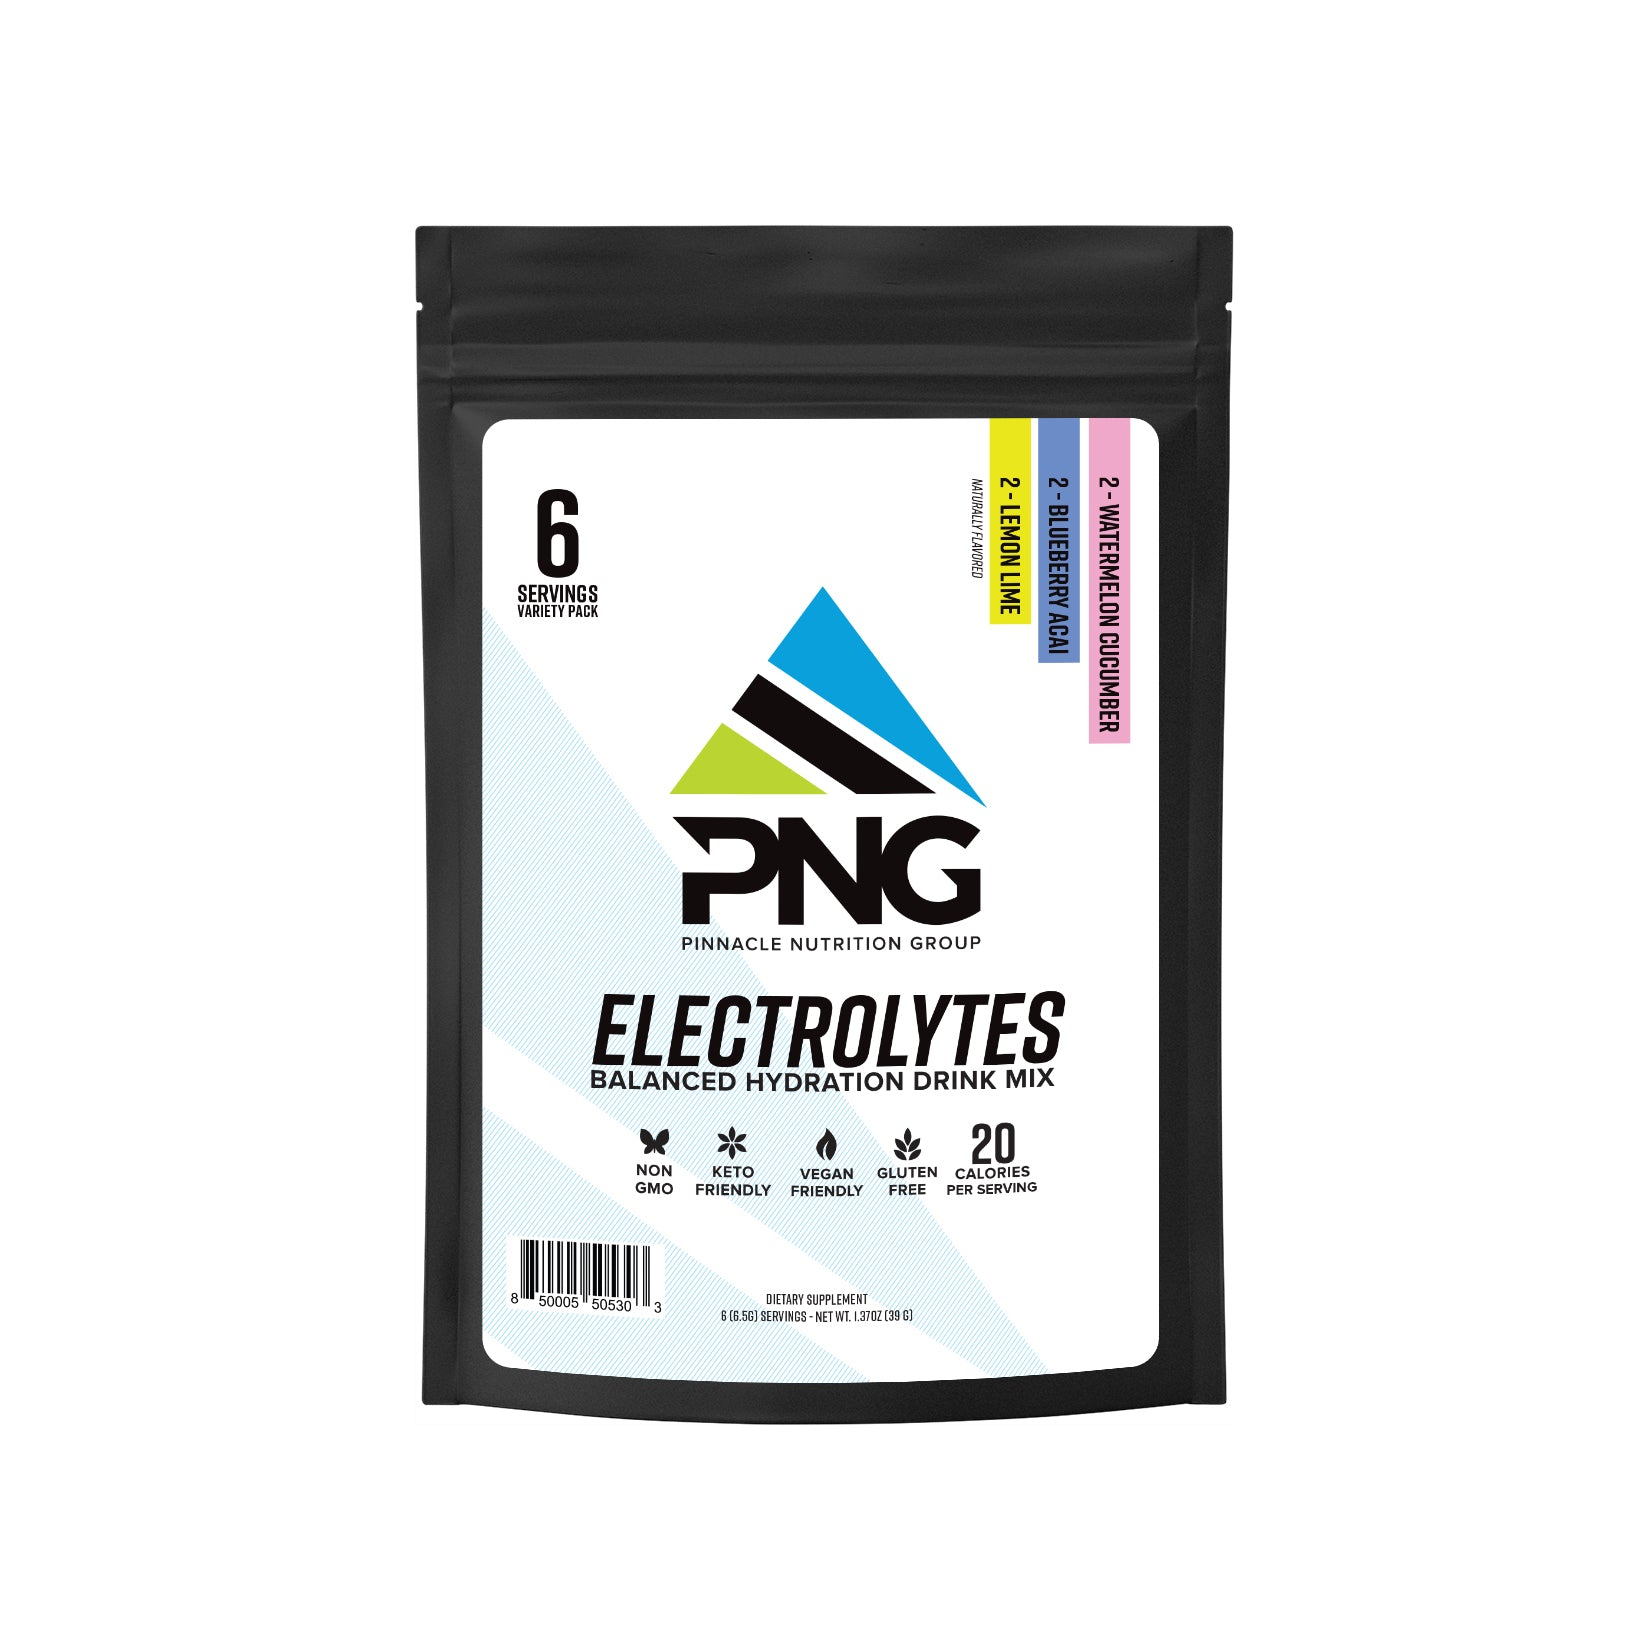 Electrolytes Sampler (6 Servings)